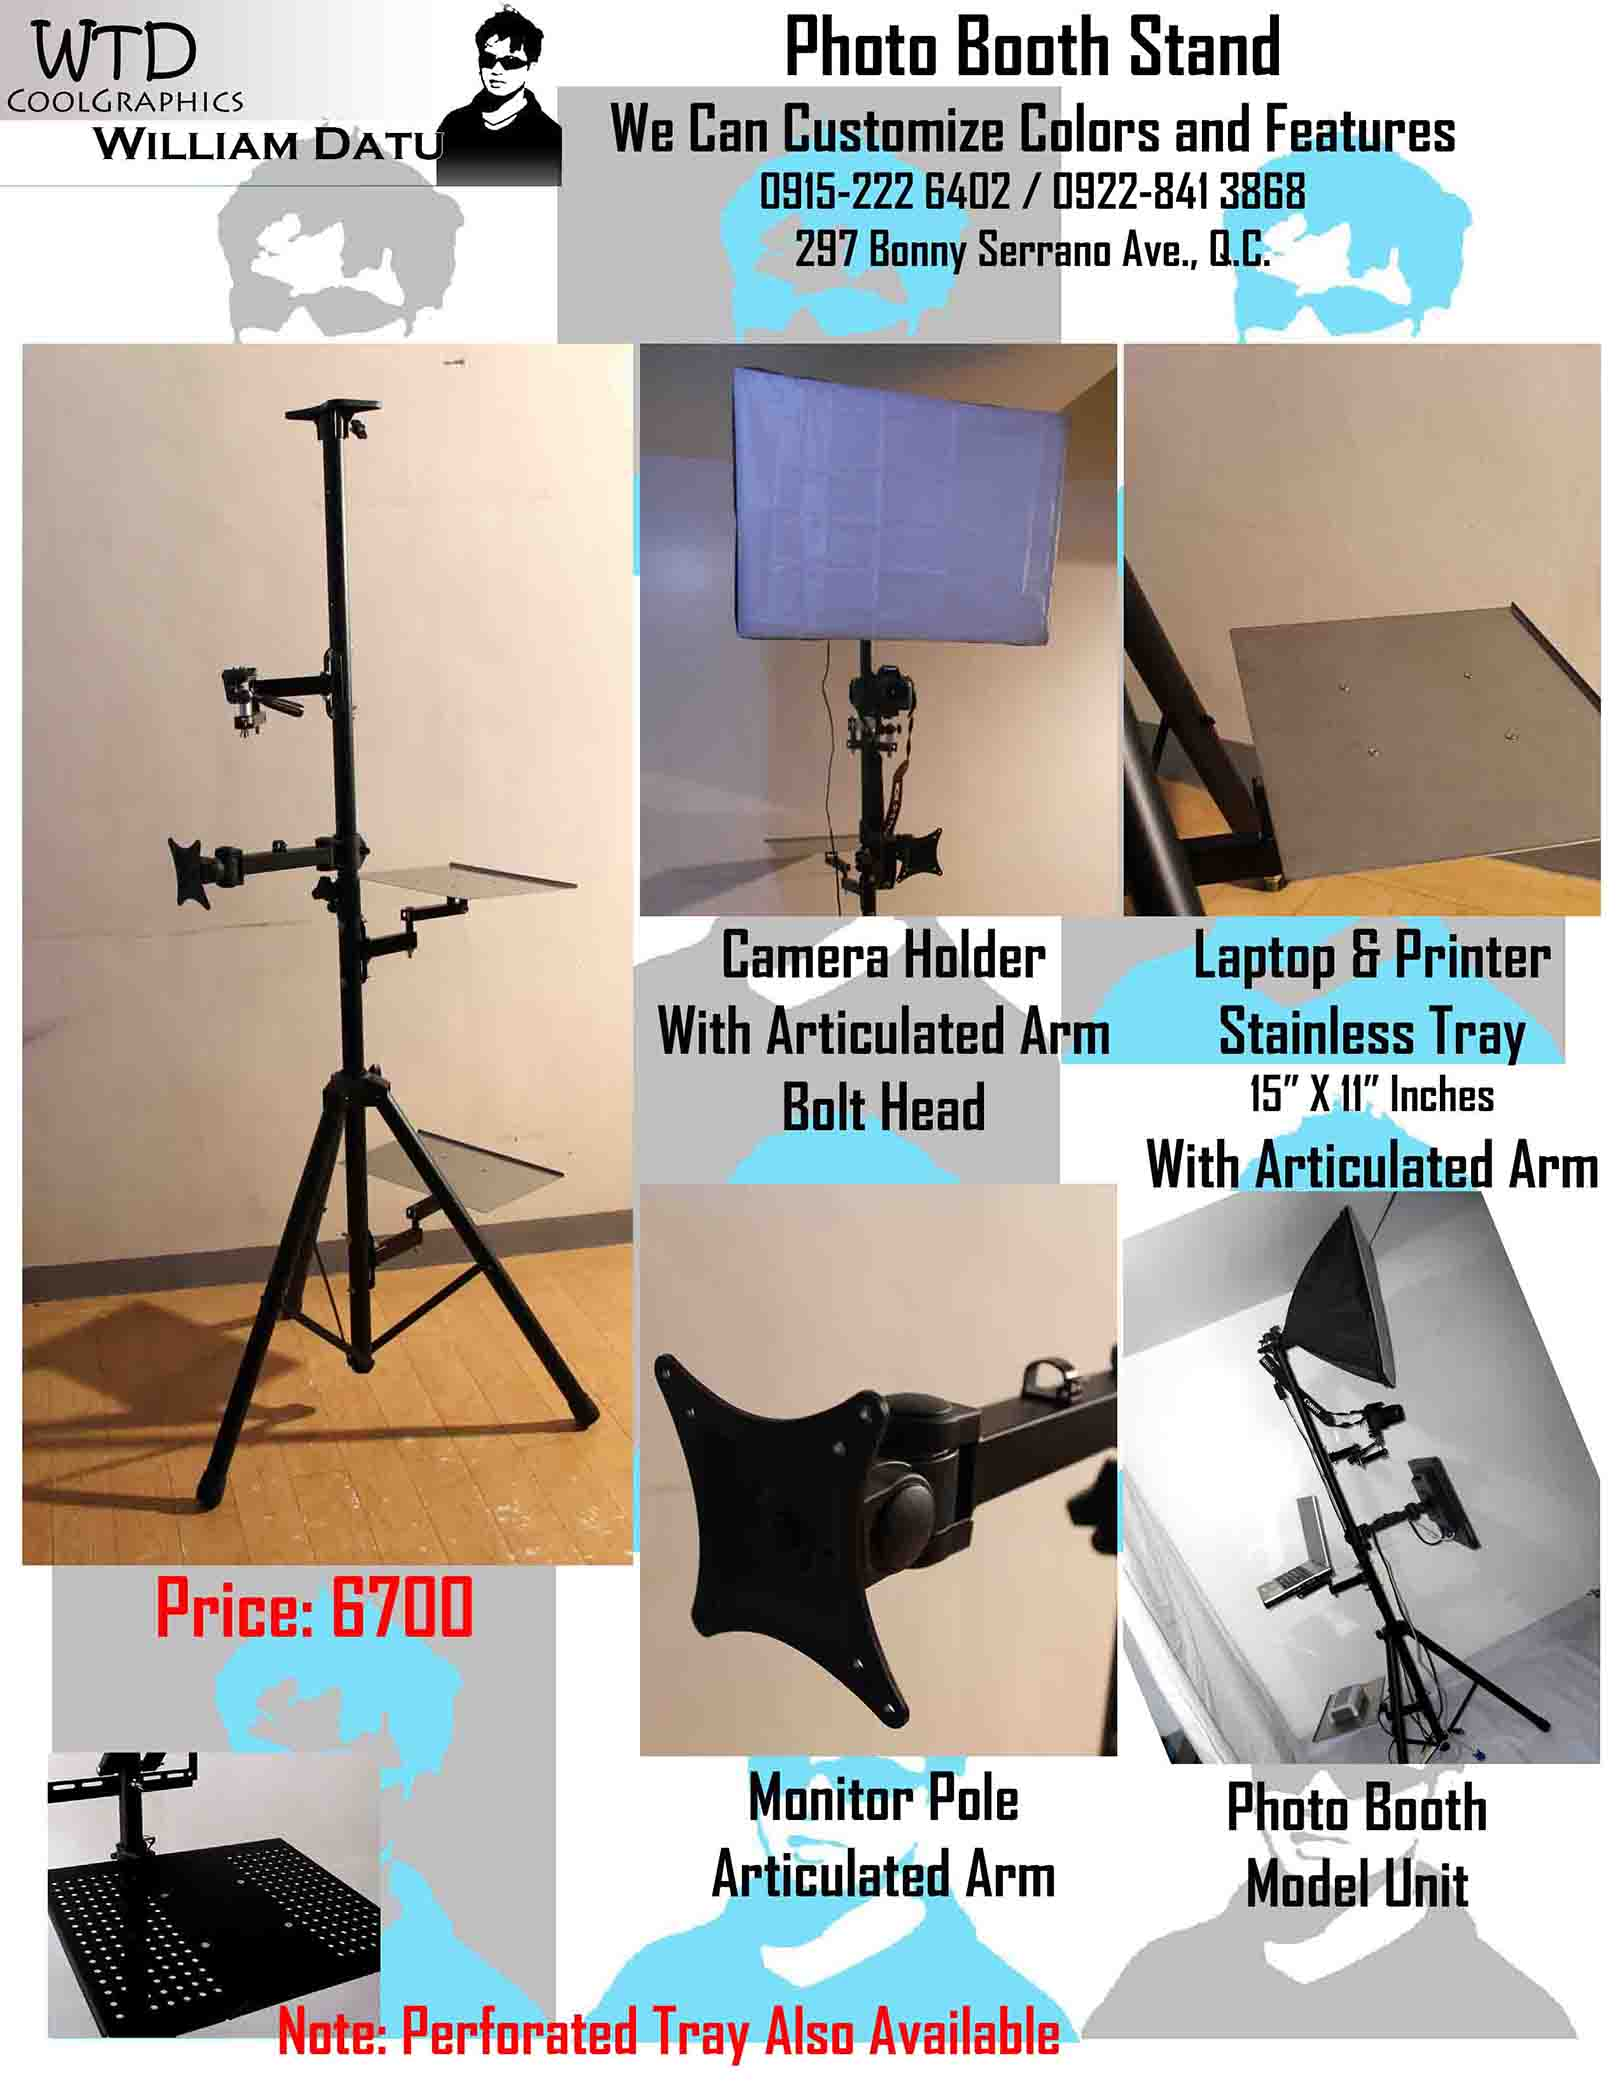 Photo Booth Tripod Stand image 2